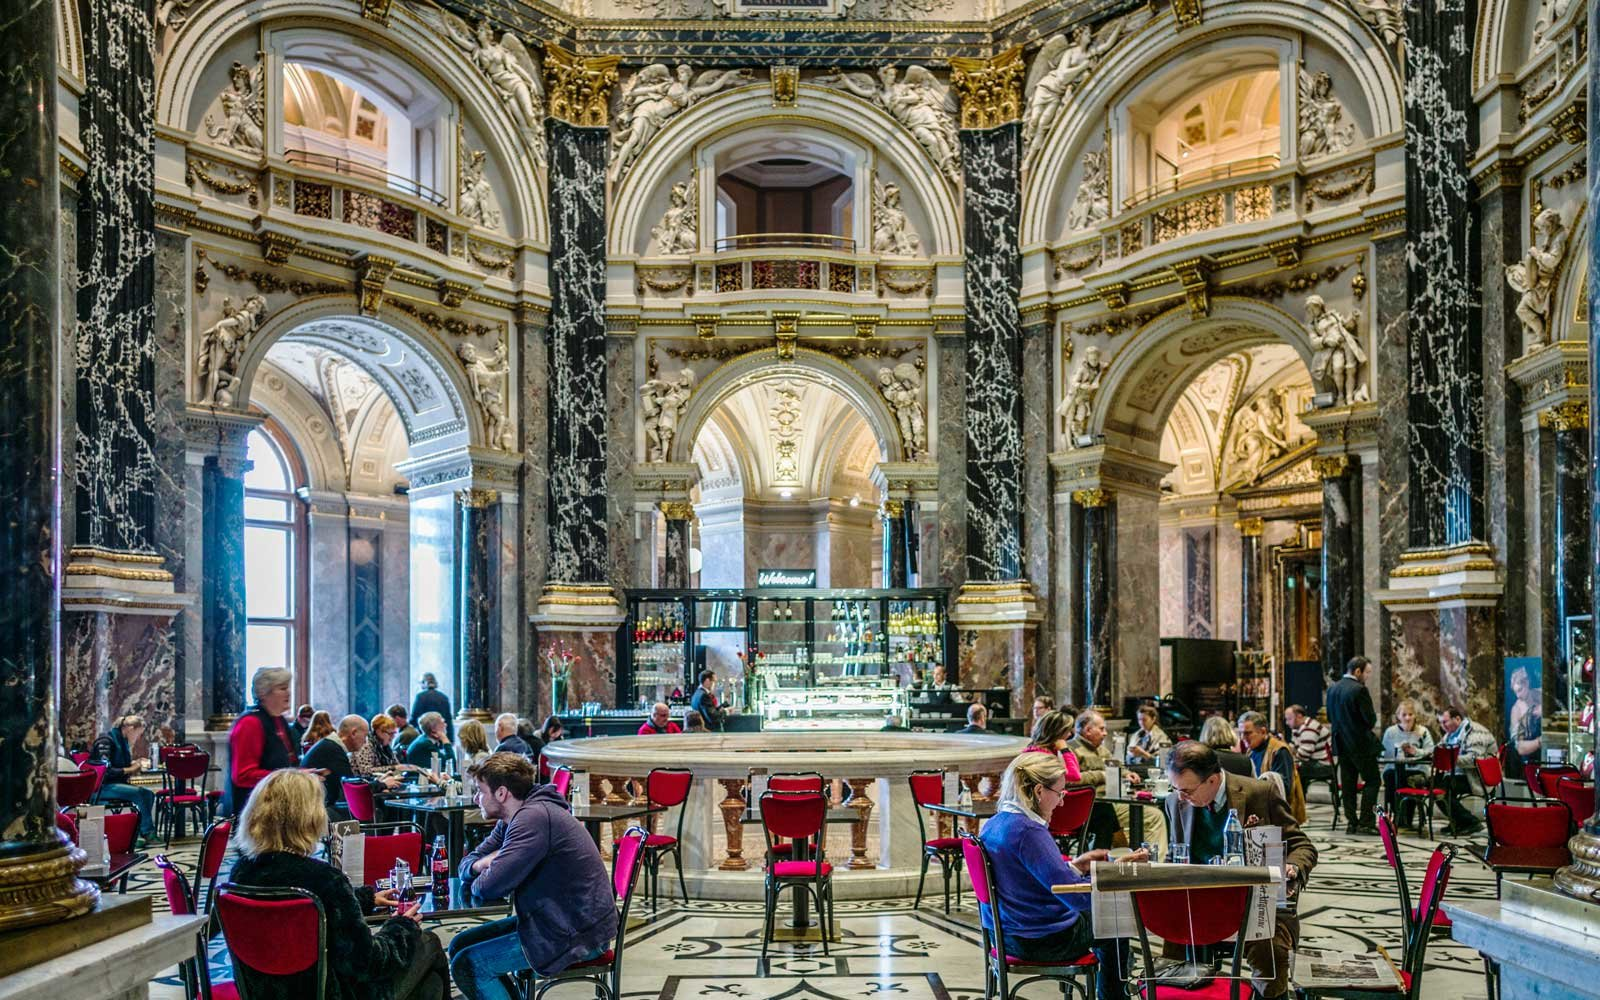 Cafe at the Kunsthistoriches Museum in Vienna, Austria